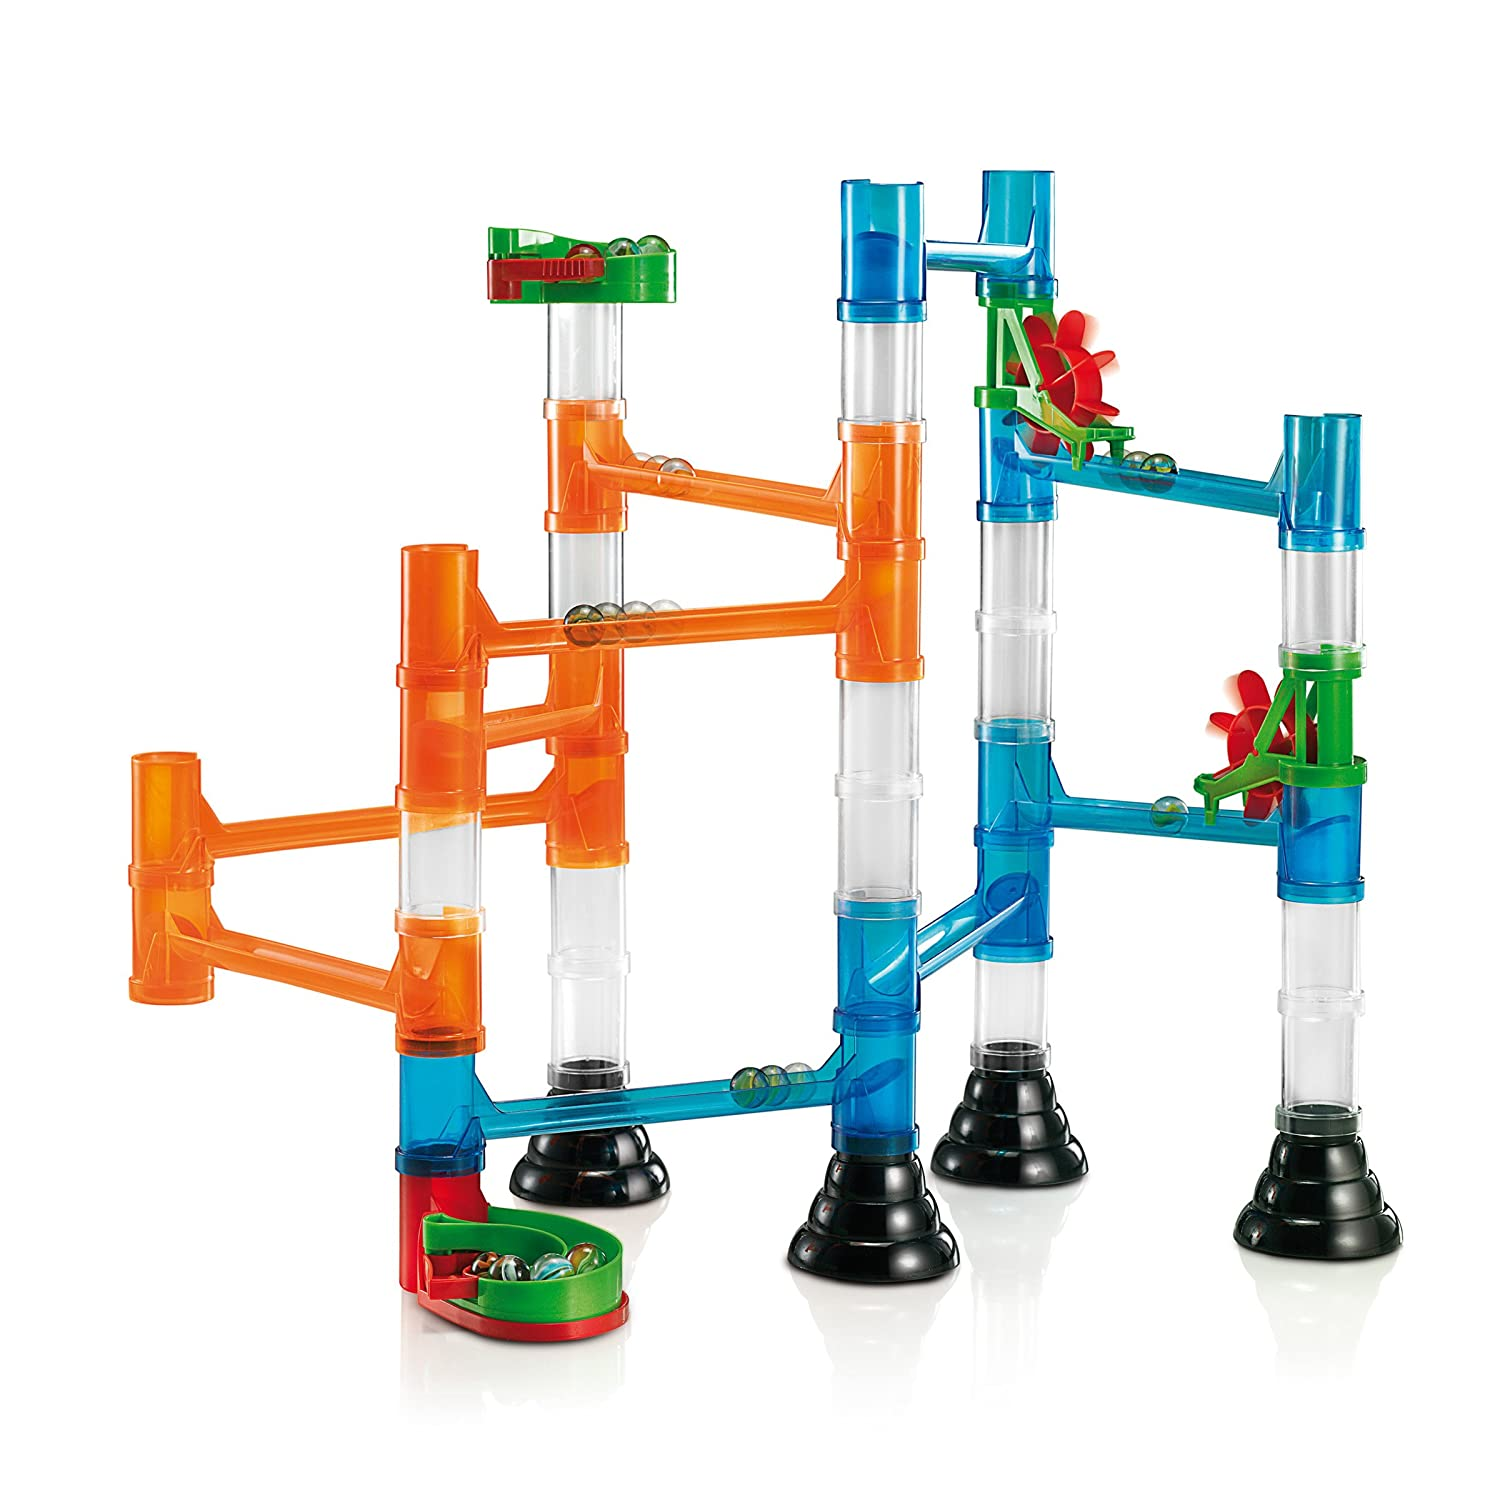 6546 Moving Visual Stimulation Made in Italy 45 Piece Basic Building Set Quercetti Transparent Marble Run Classic Construction Toy Perfect for Beginners Ages 4 and Up